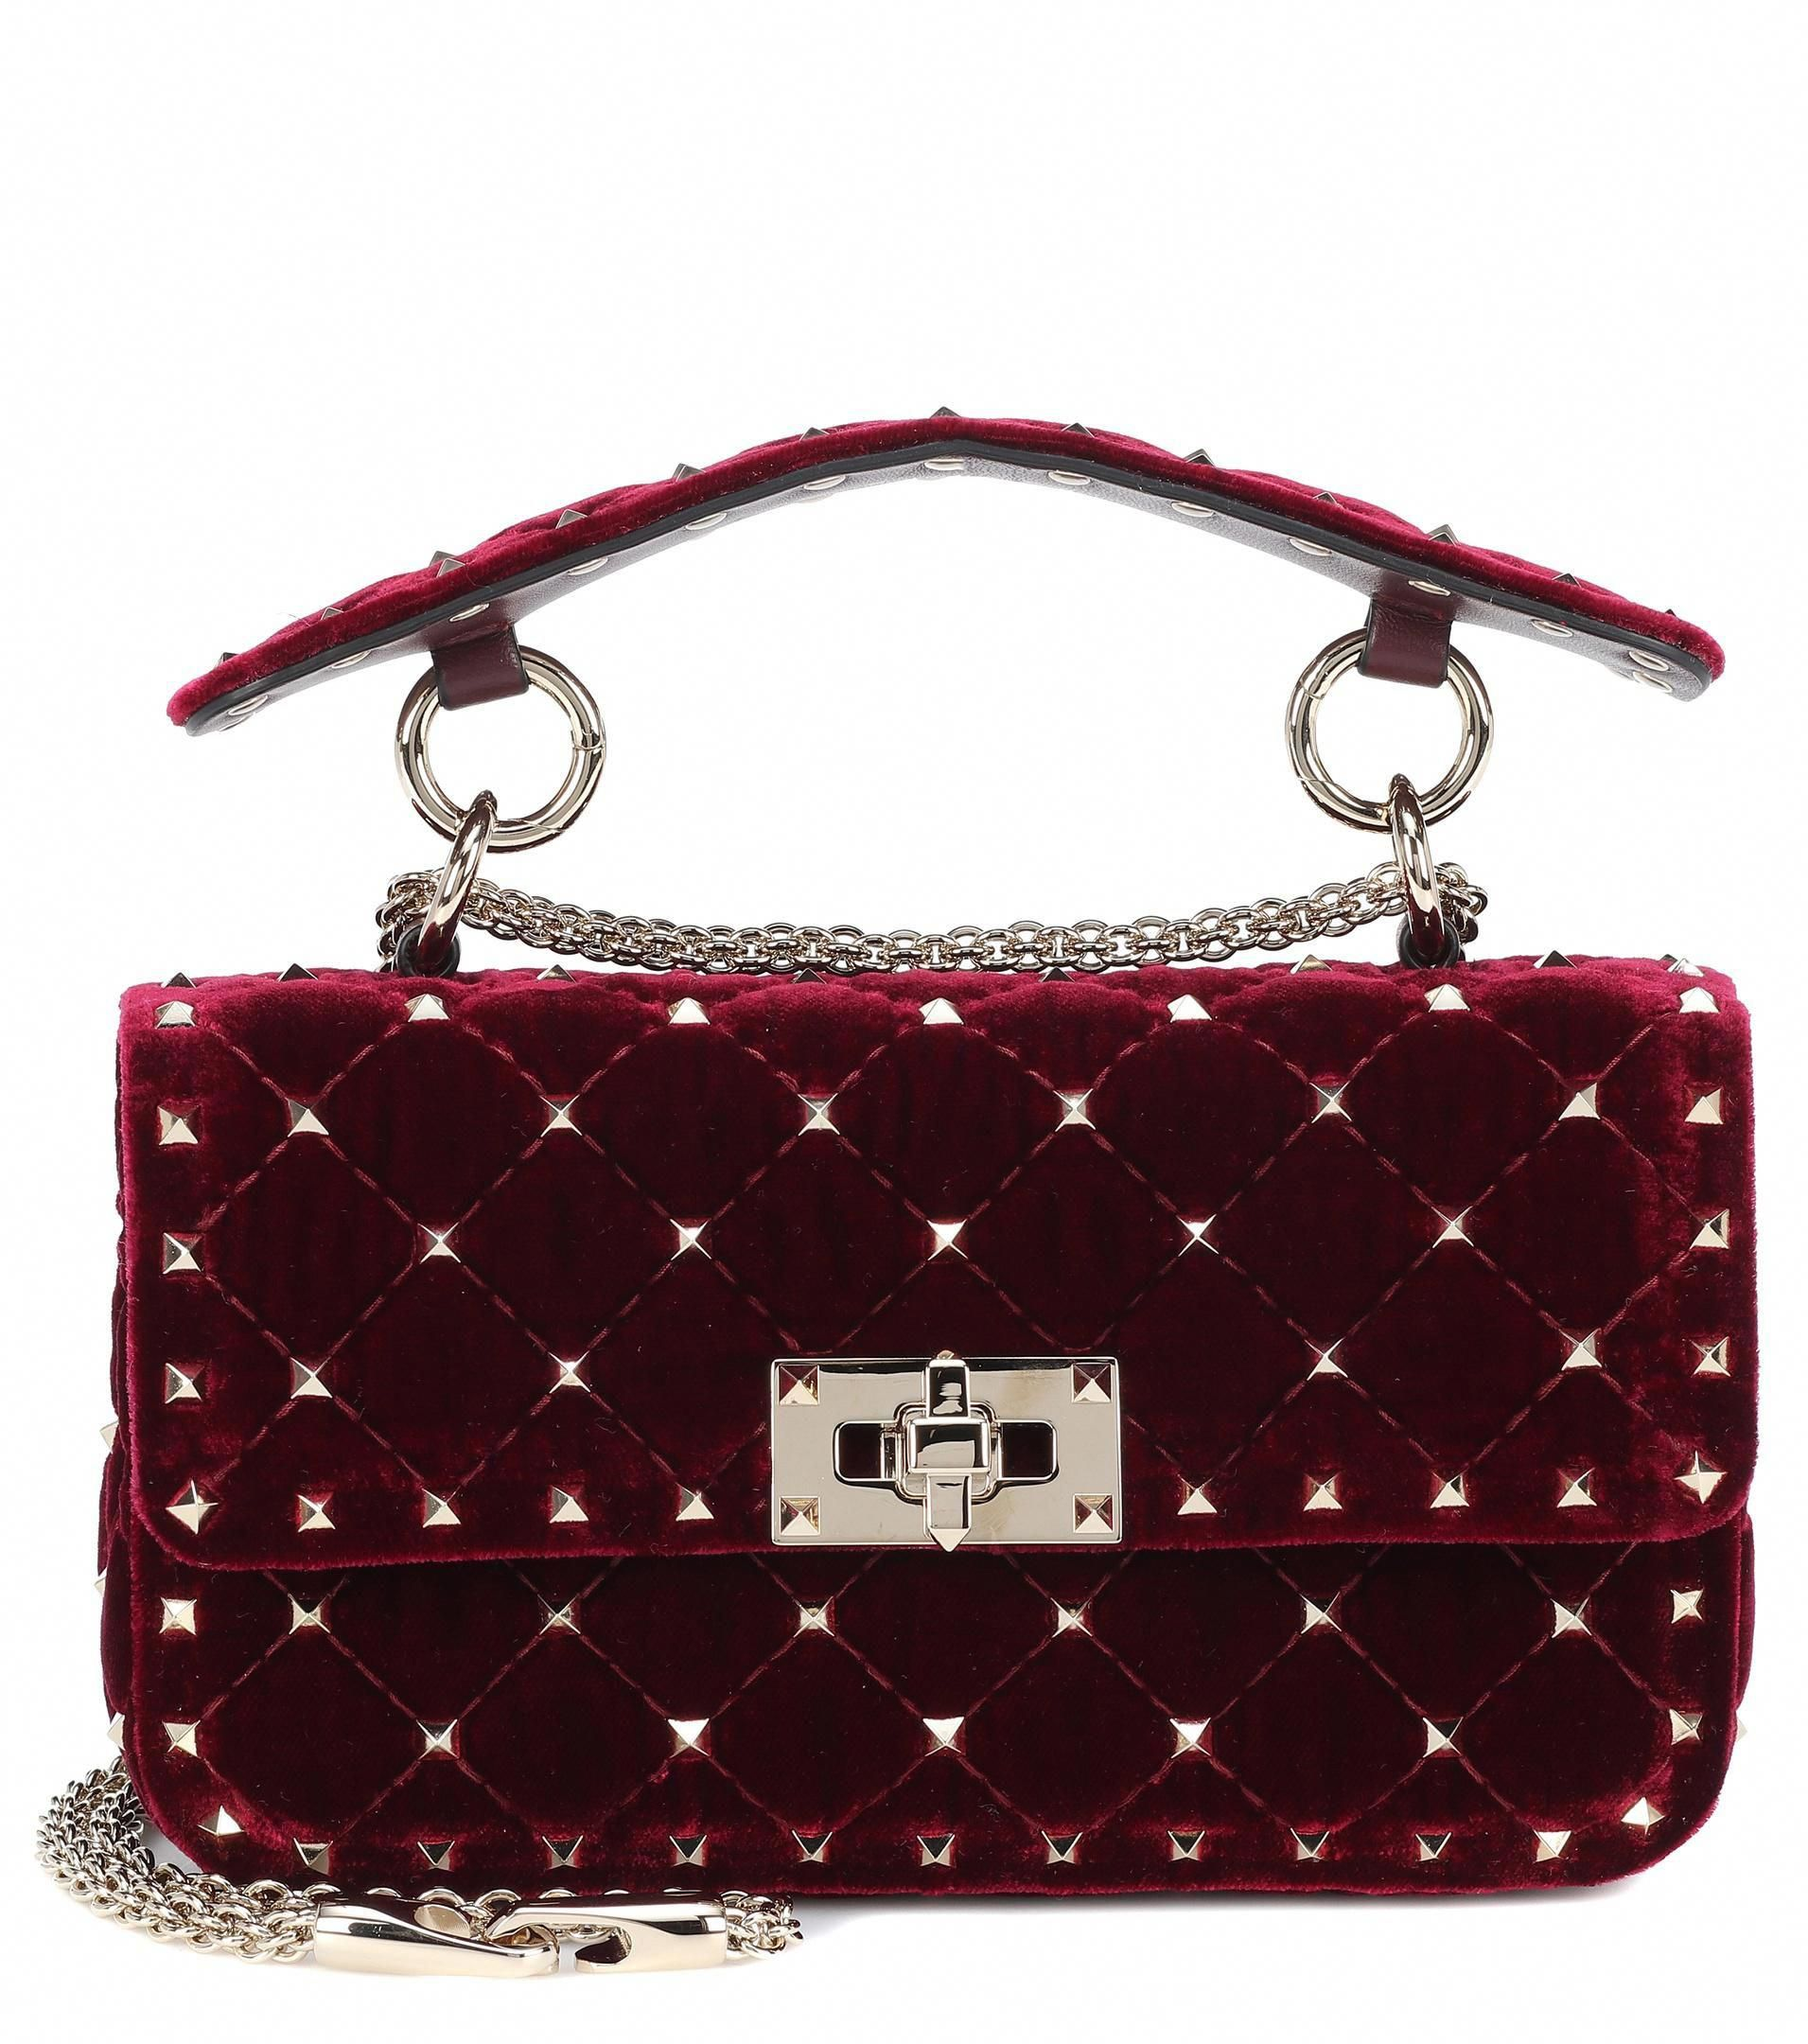 Lyst - Valentino Rockstud Spike Small Velvet Shoulder Bag in Red  Valentino 19e440394e2b8